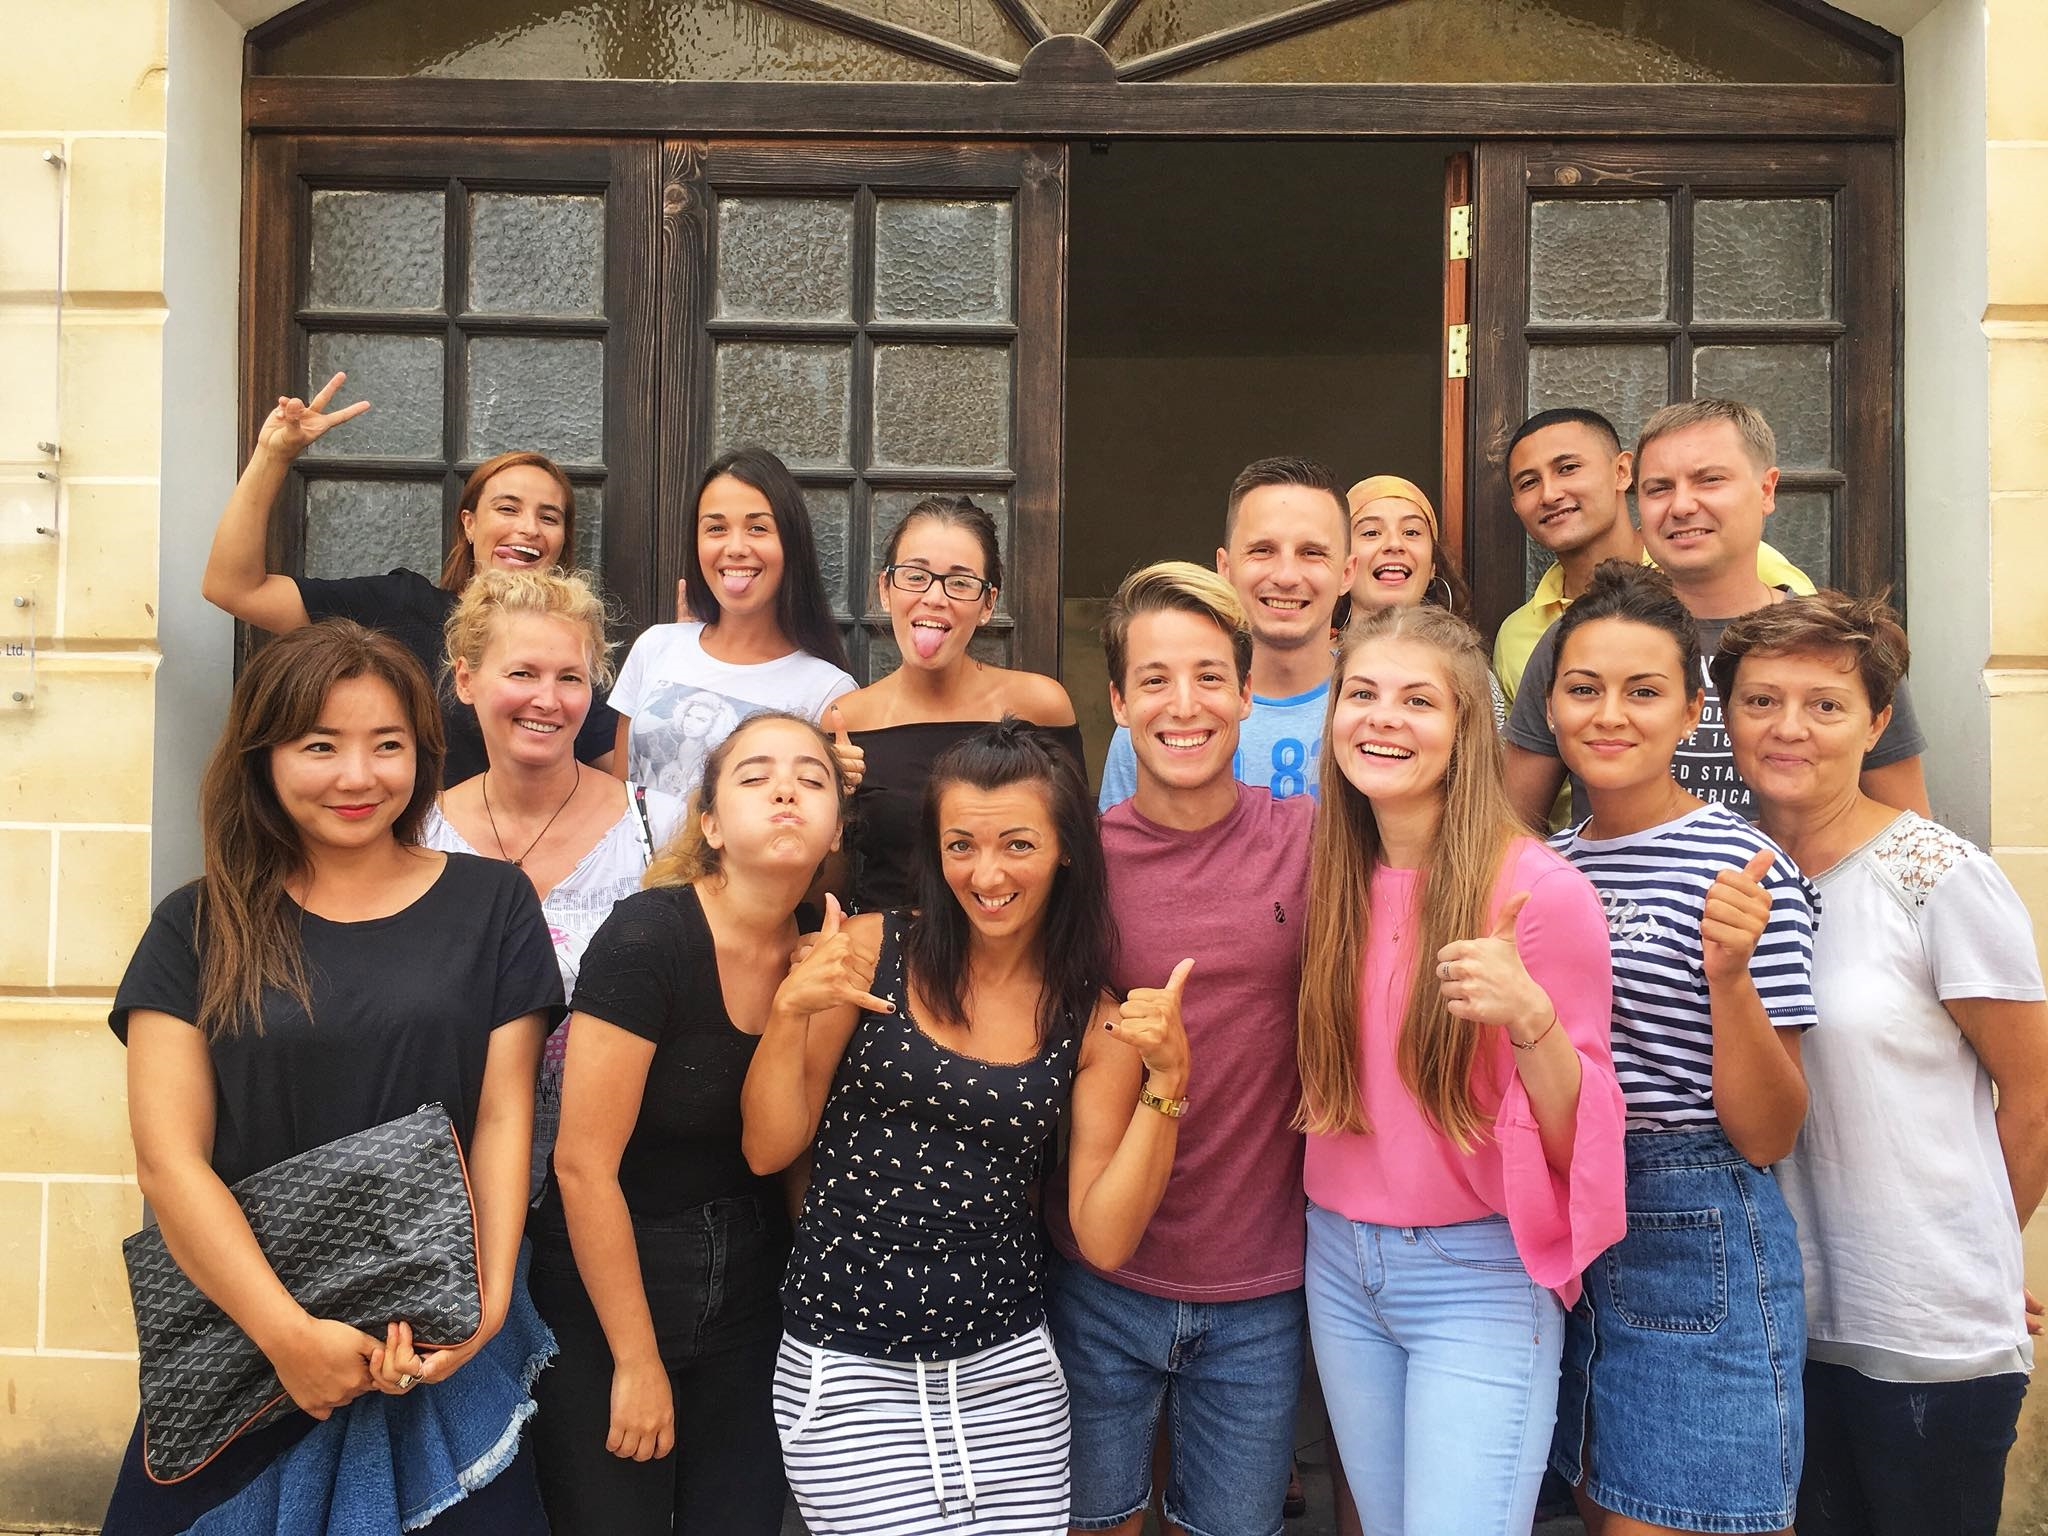 Learn Study English in Malta with Gateway School of English GSE English courses St Julian's sprachreisen intercambio cursos ingles sejours linguistiques vacanza studio imparare inglese